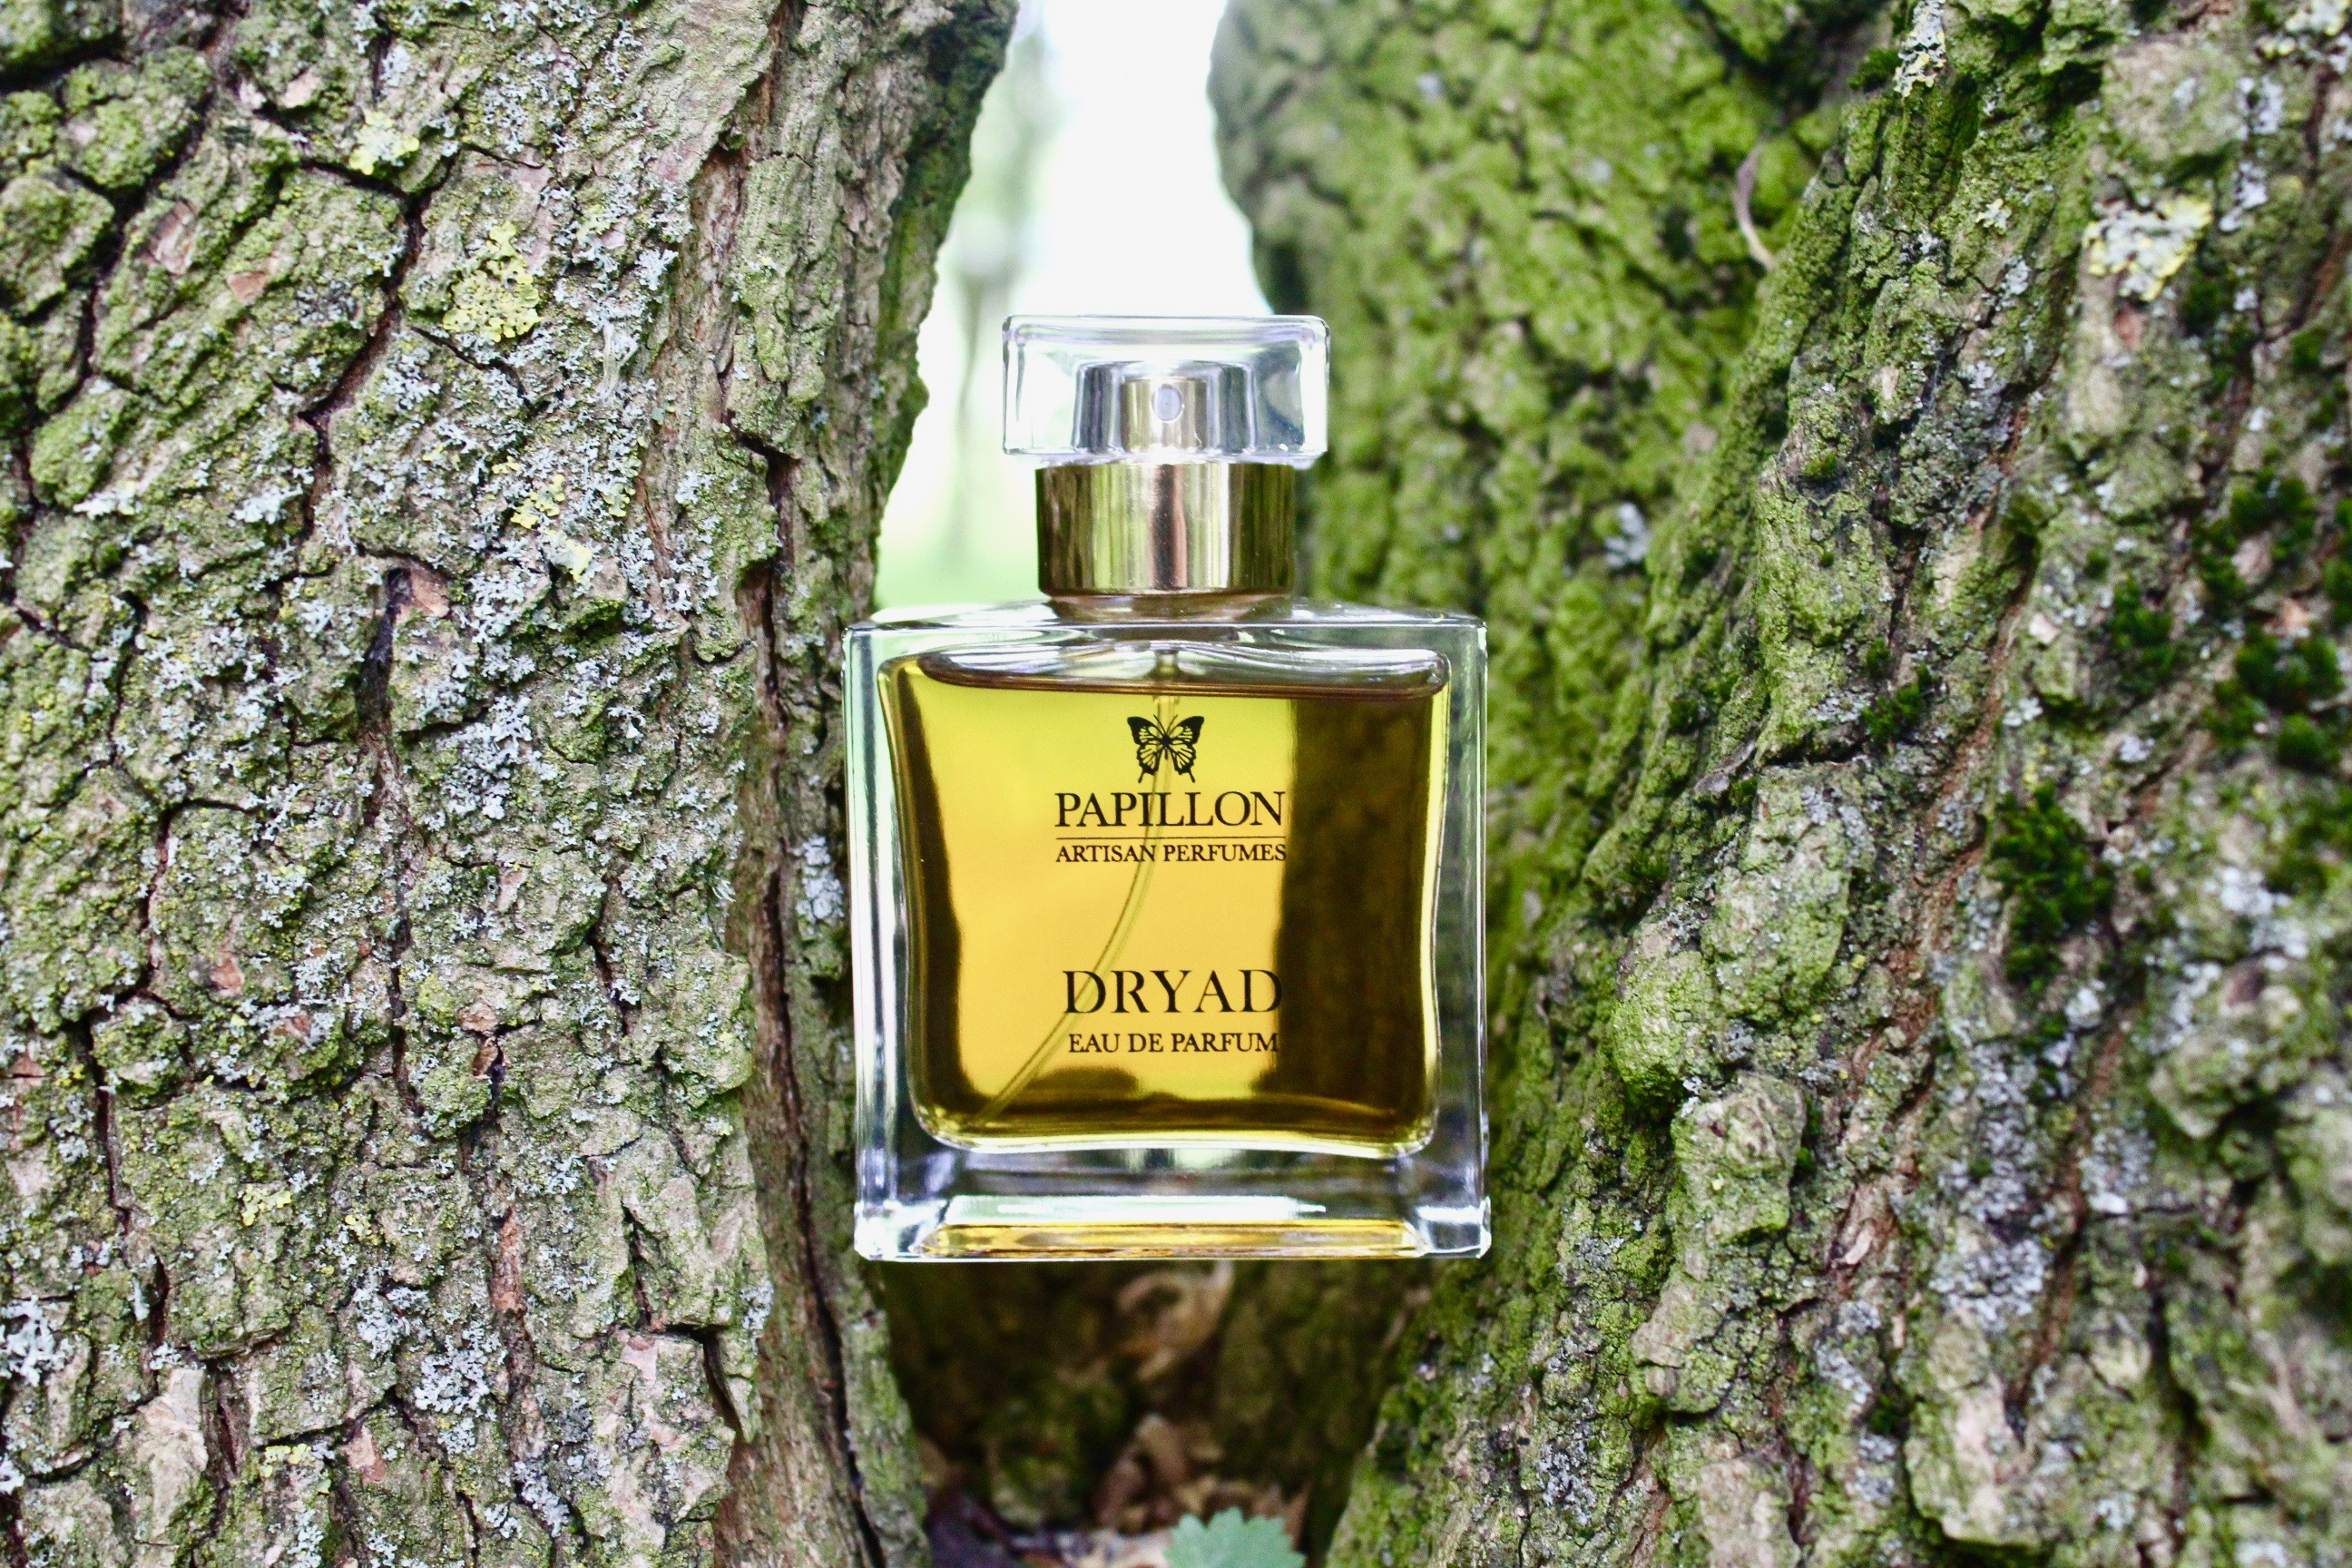 Dryad: Spirit of the Forest